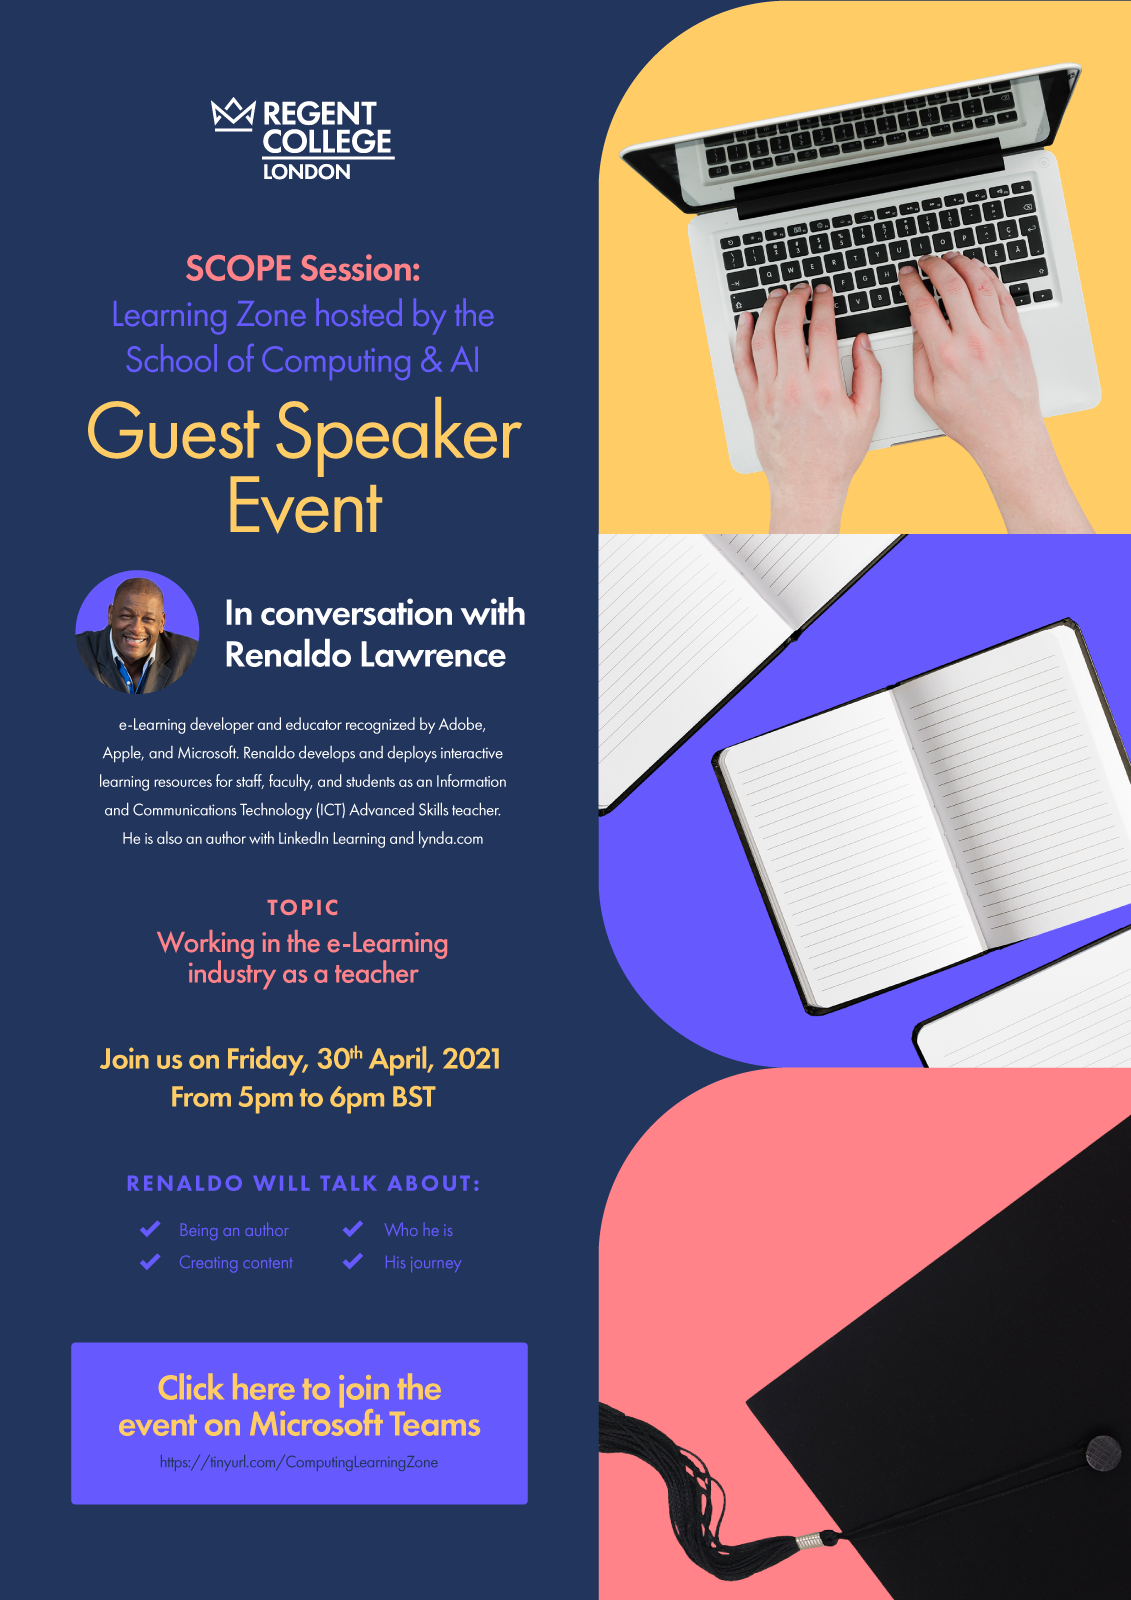 Learning Zone Scope Session by School of Computing and AI - Regent College London